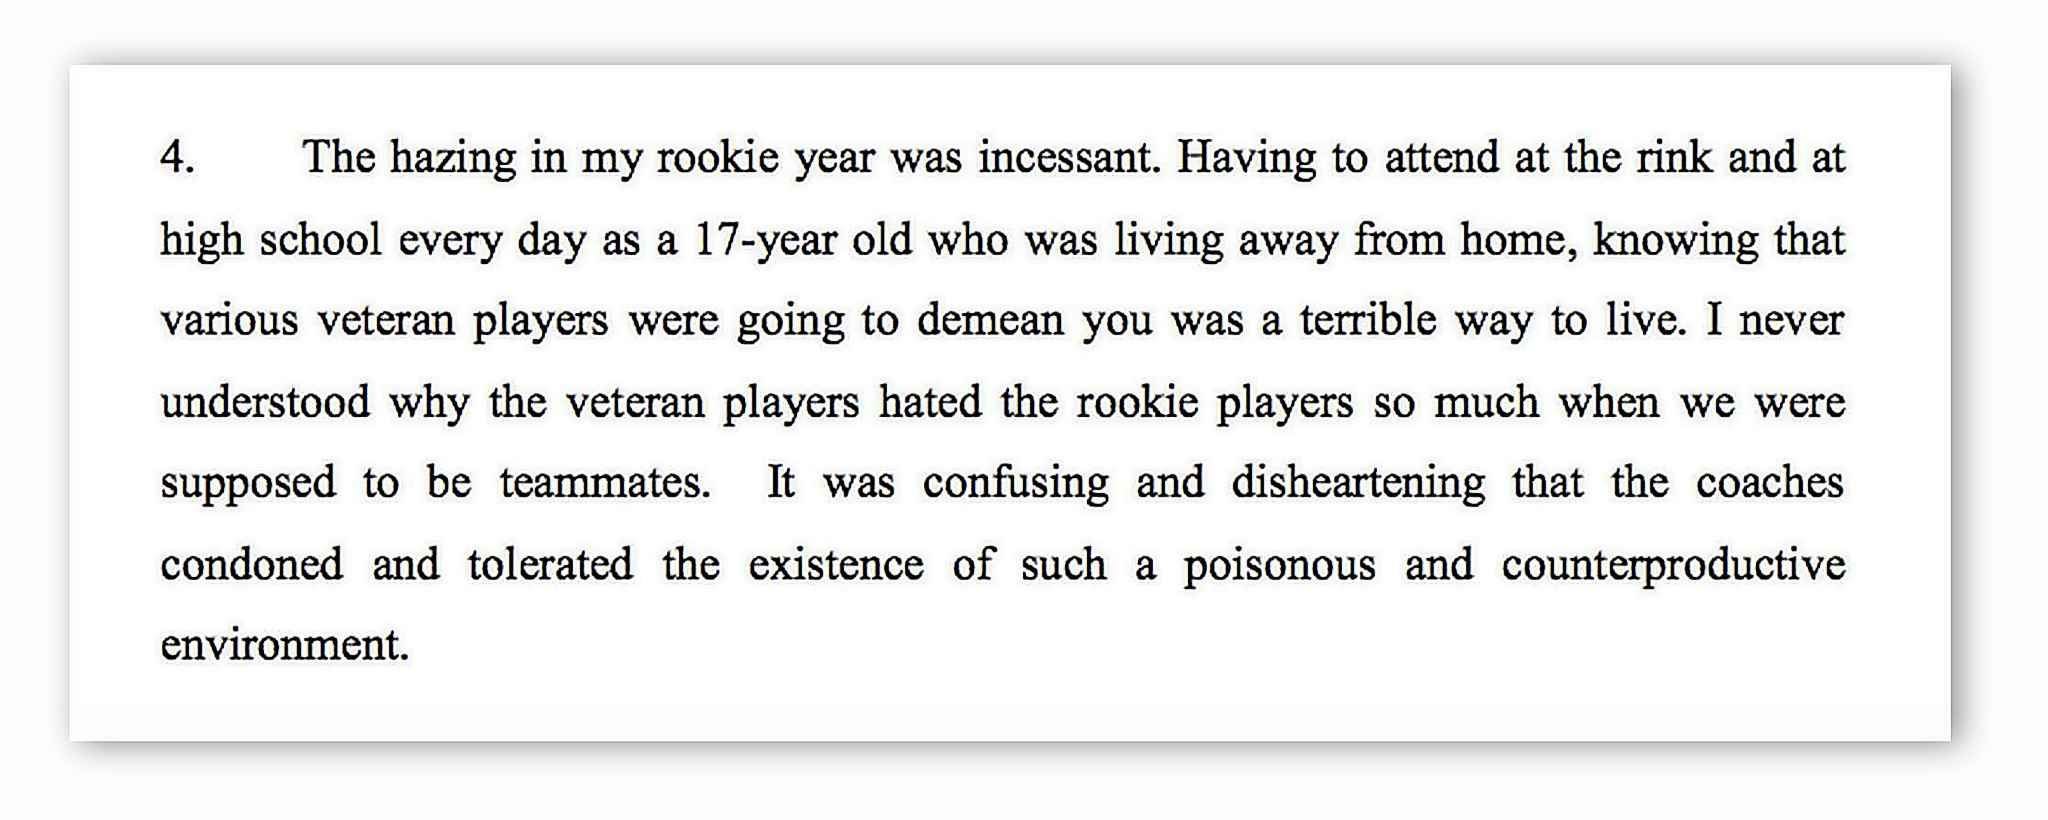 "From the affidavit of a former player: ""The hazing in my rookie year was incessant."""